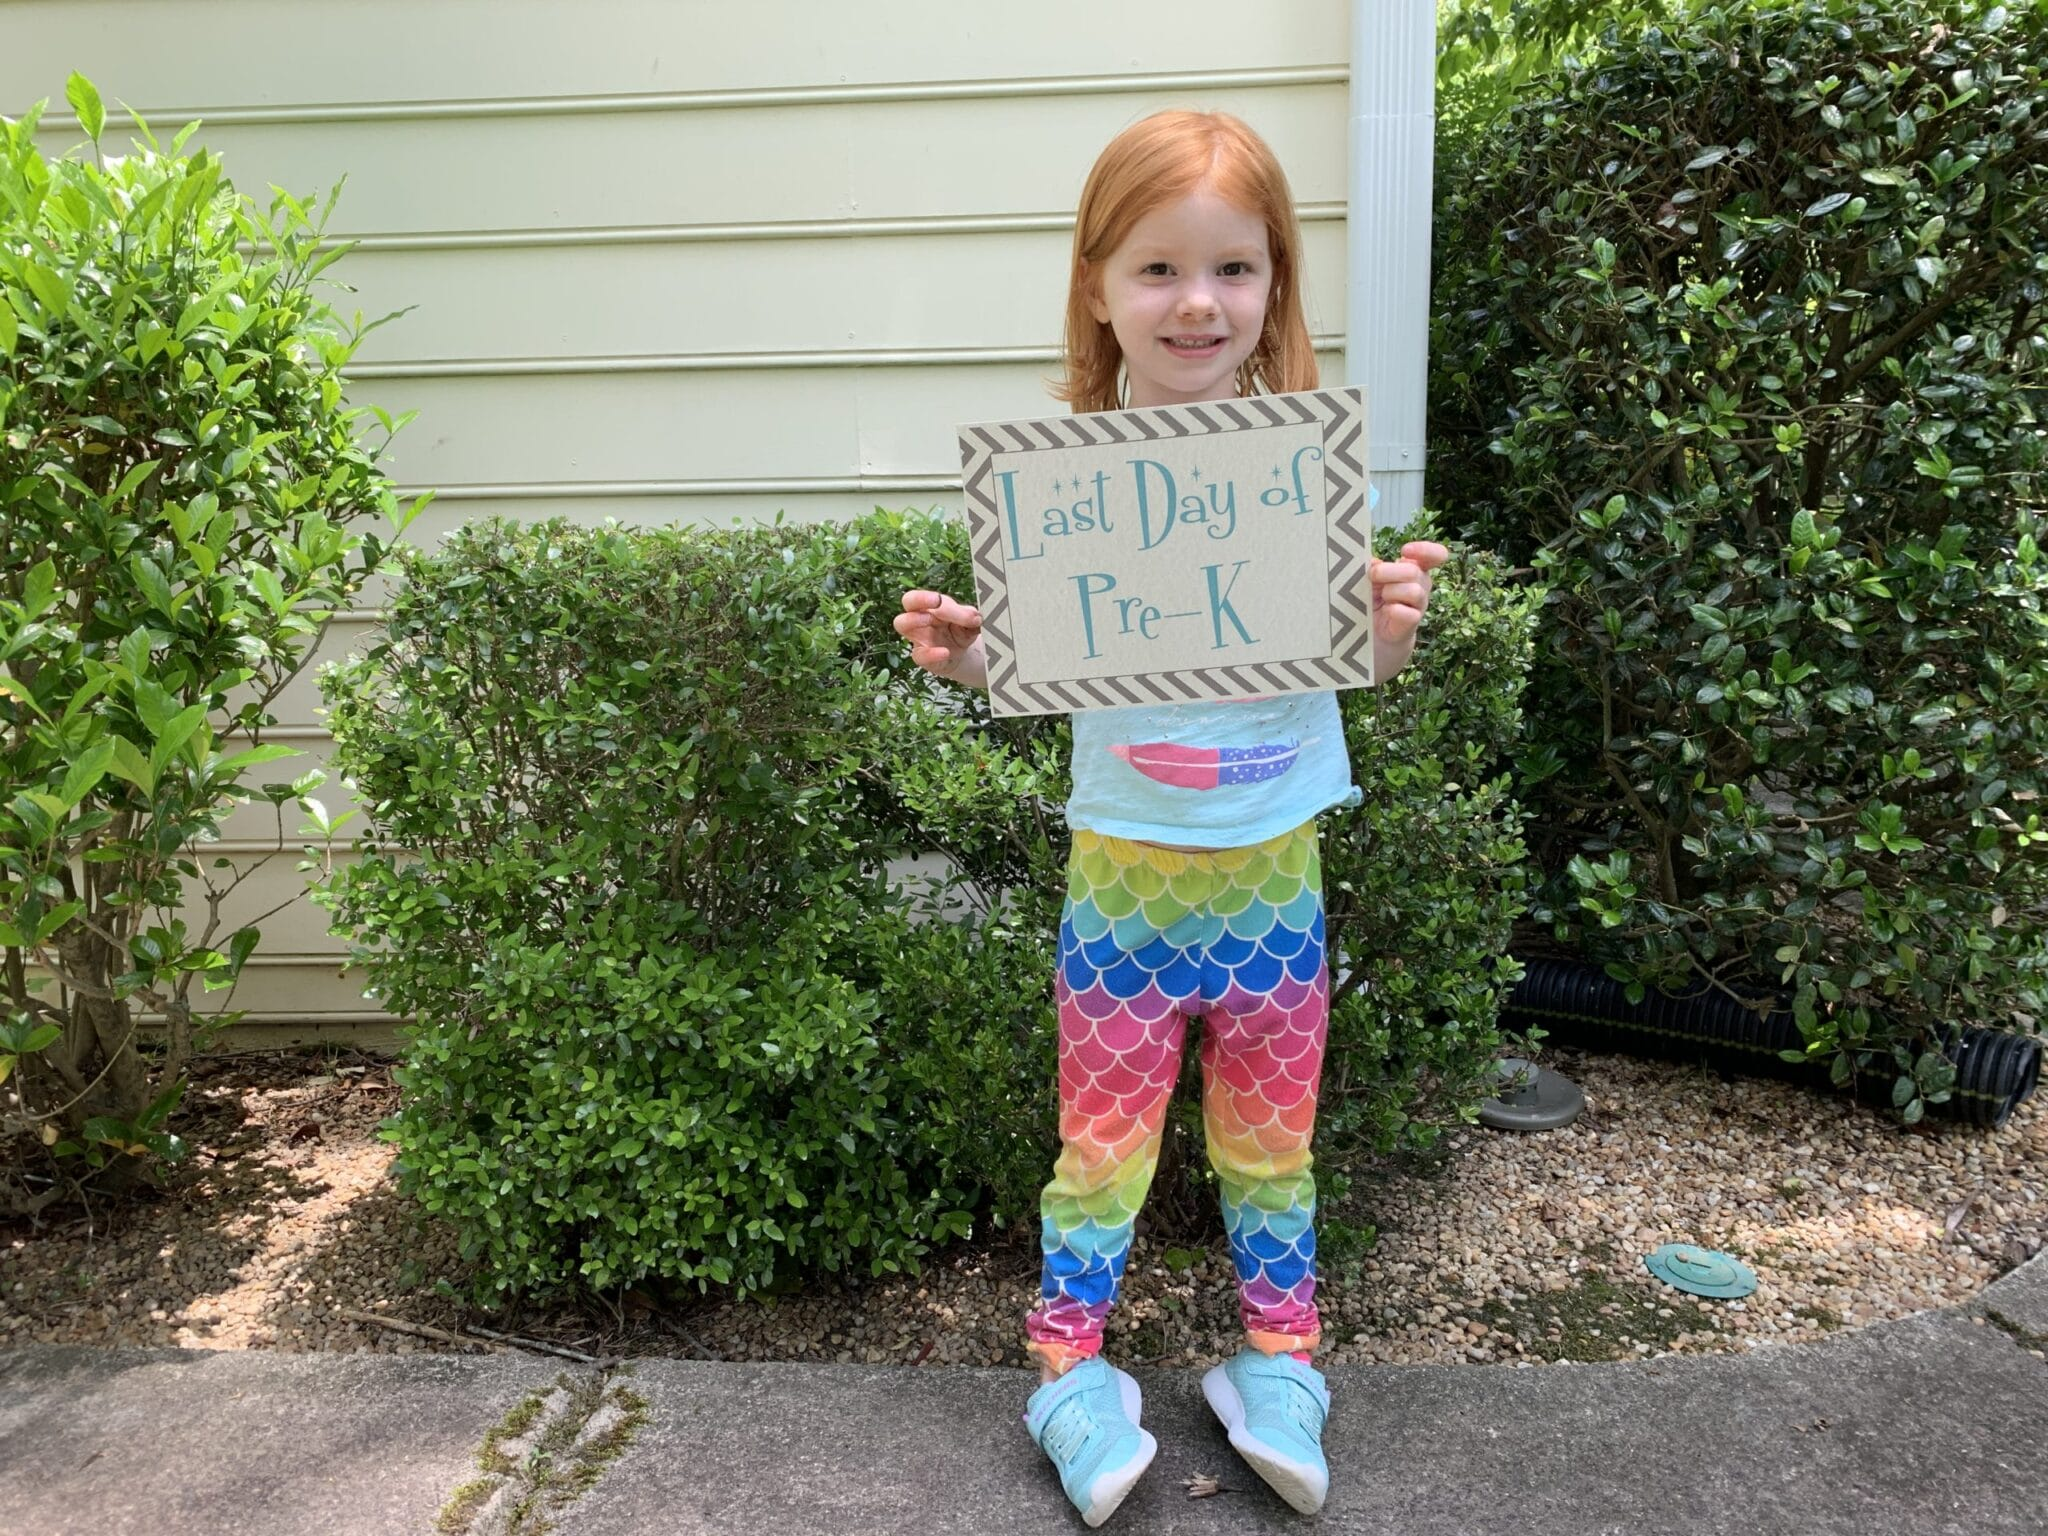 Last day of pre-k with sign